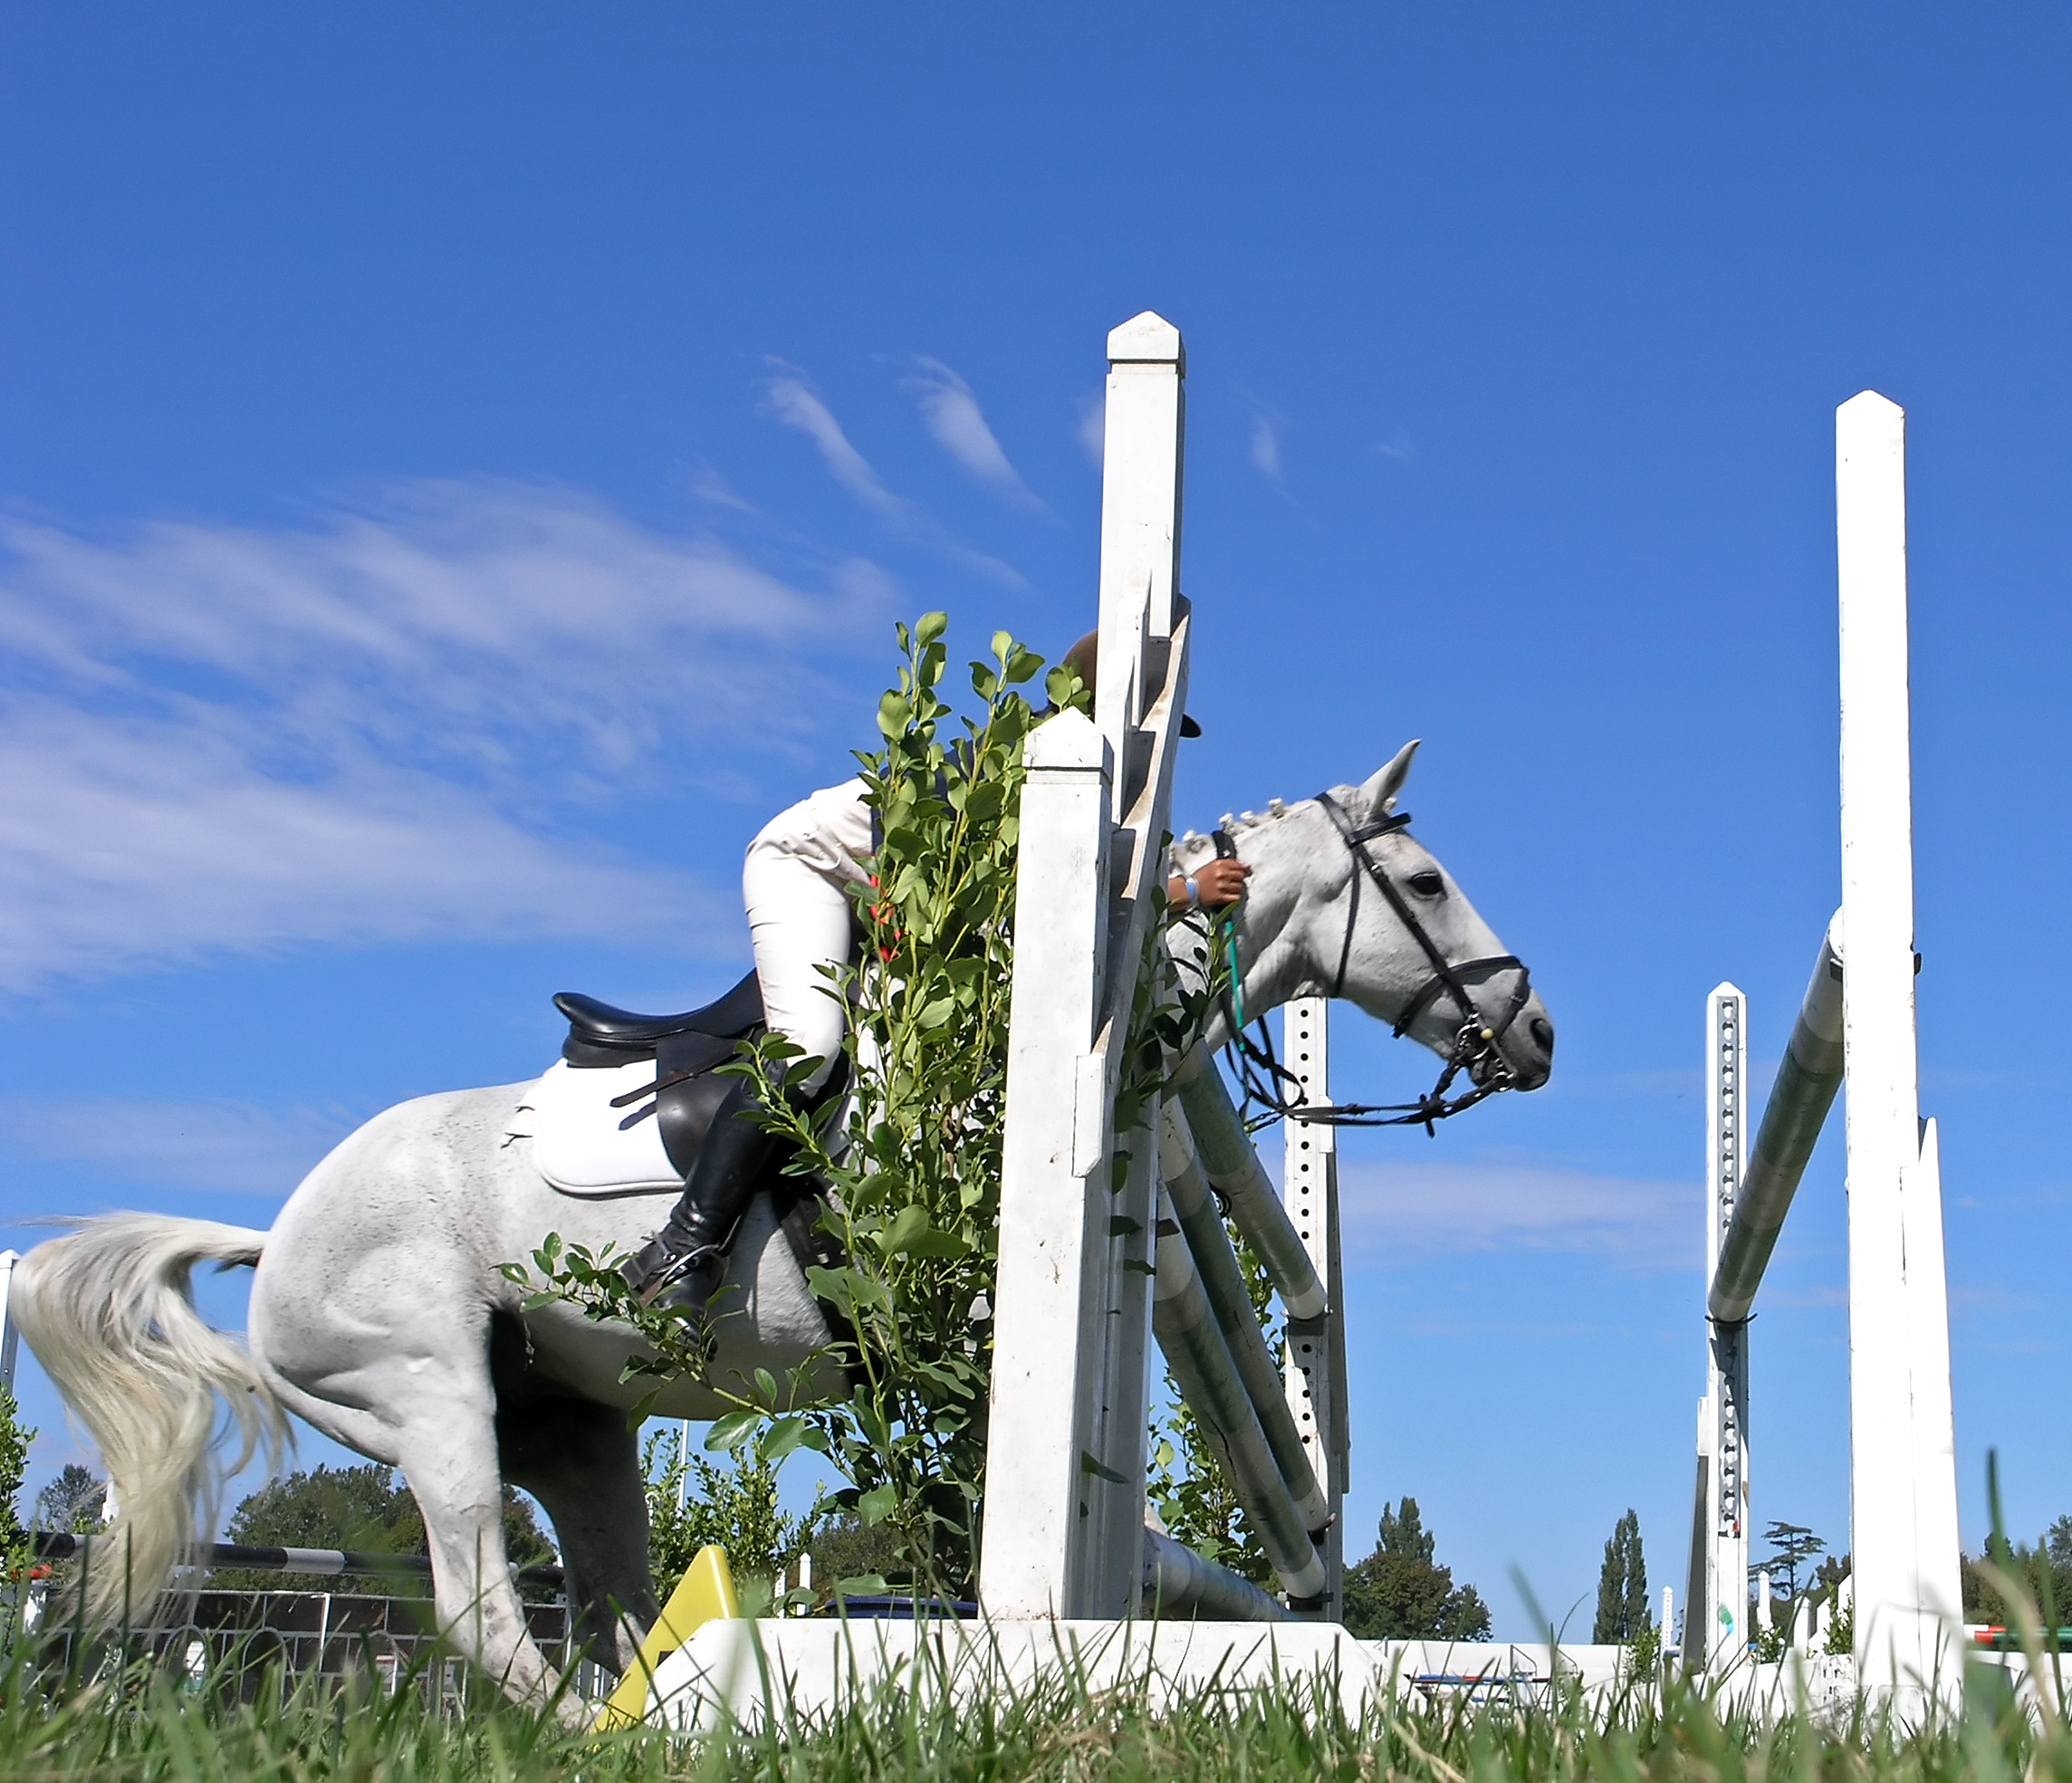 AskHQ: How can I deal with my horse refusing jumps?